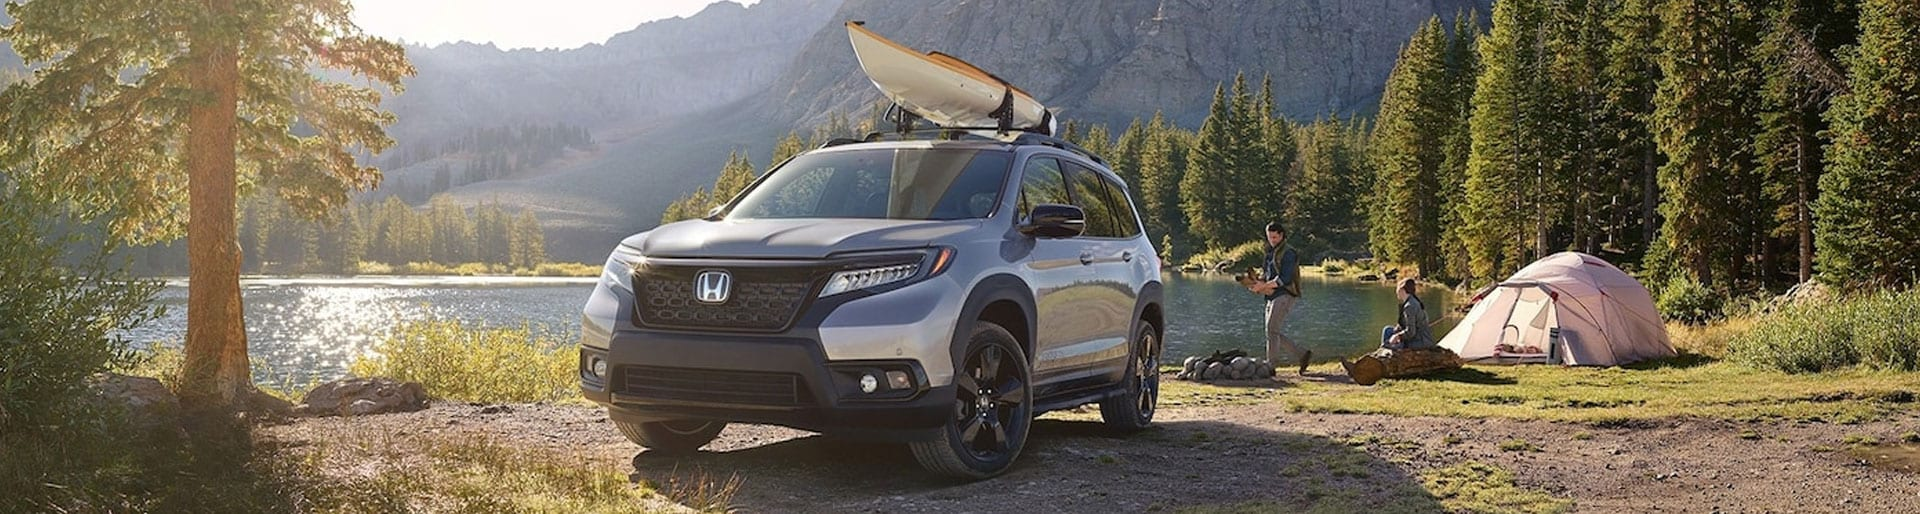 Honda Passport Near Lake